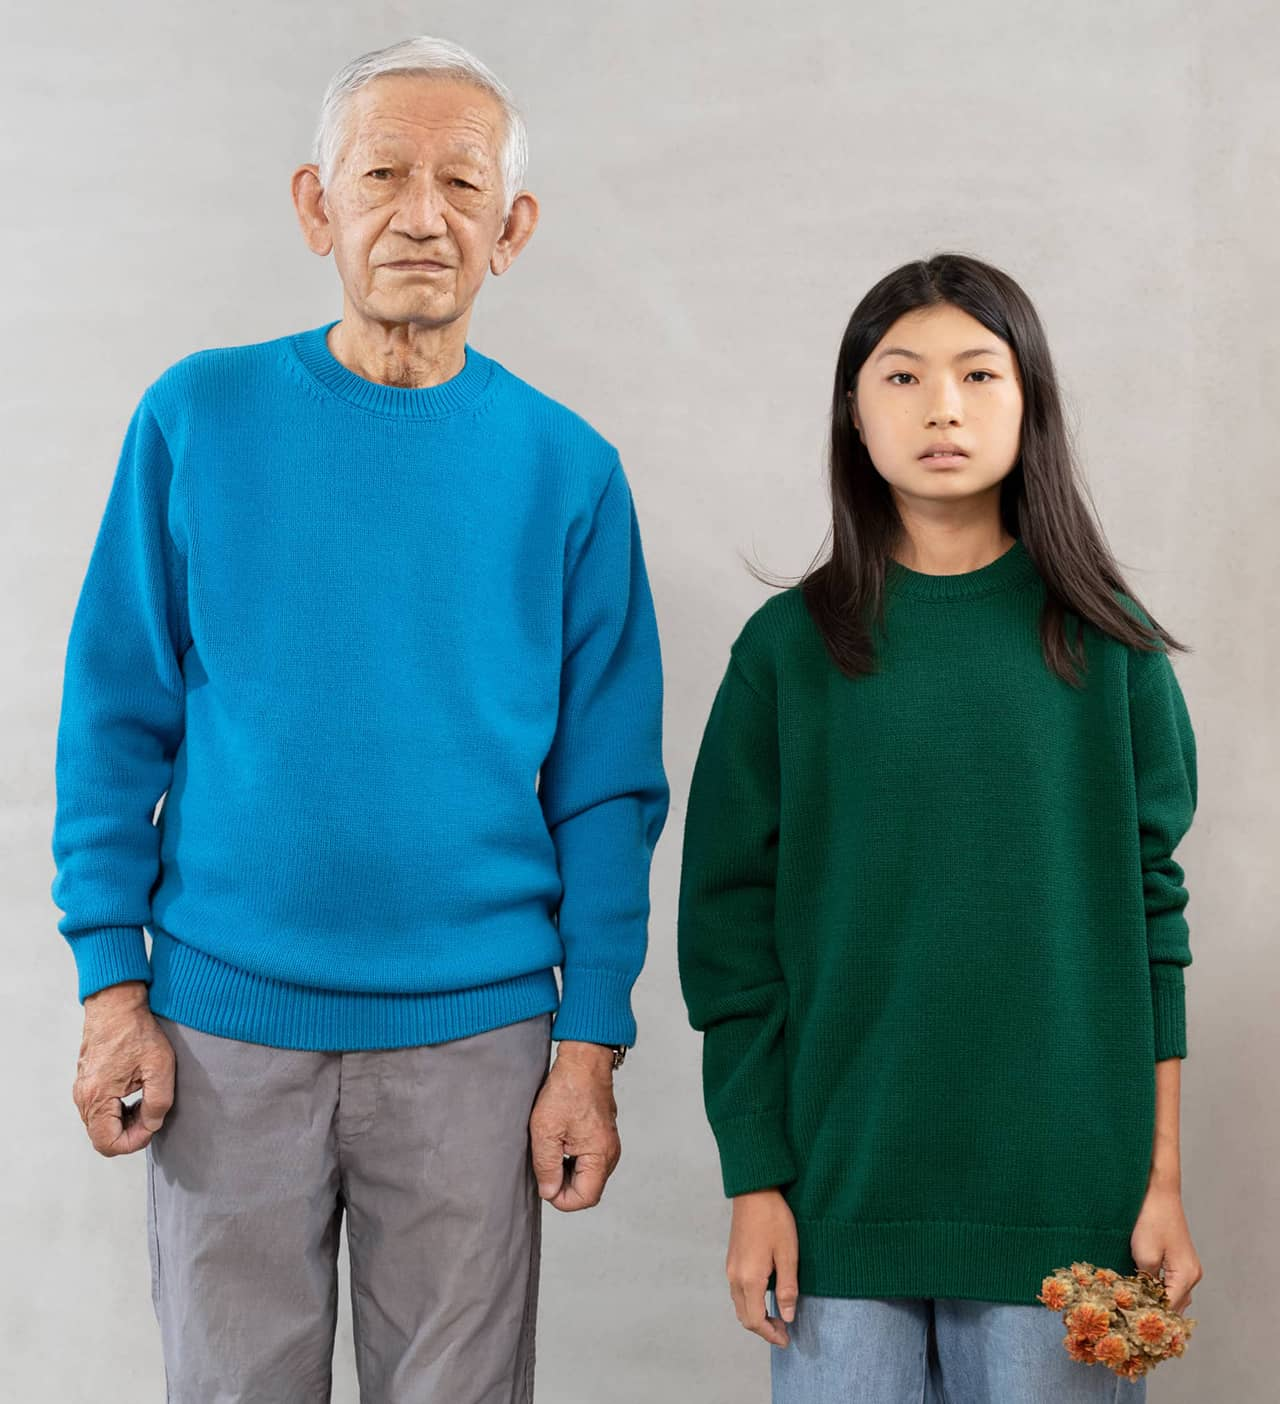 Grandfather and granddaughter 祖父と孫